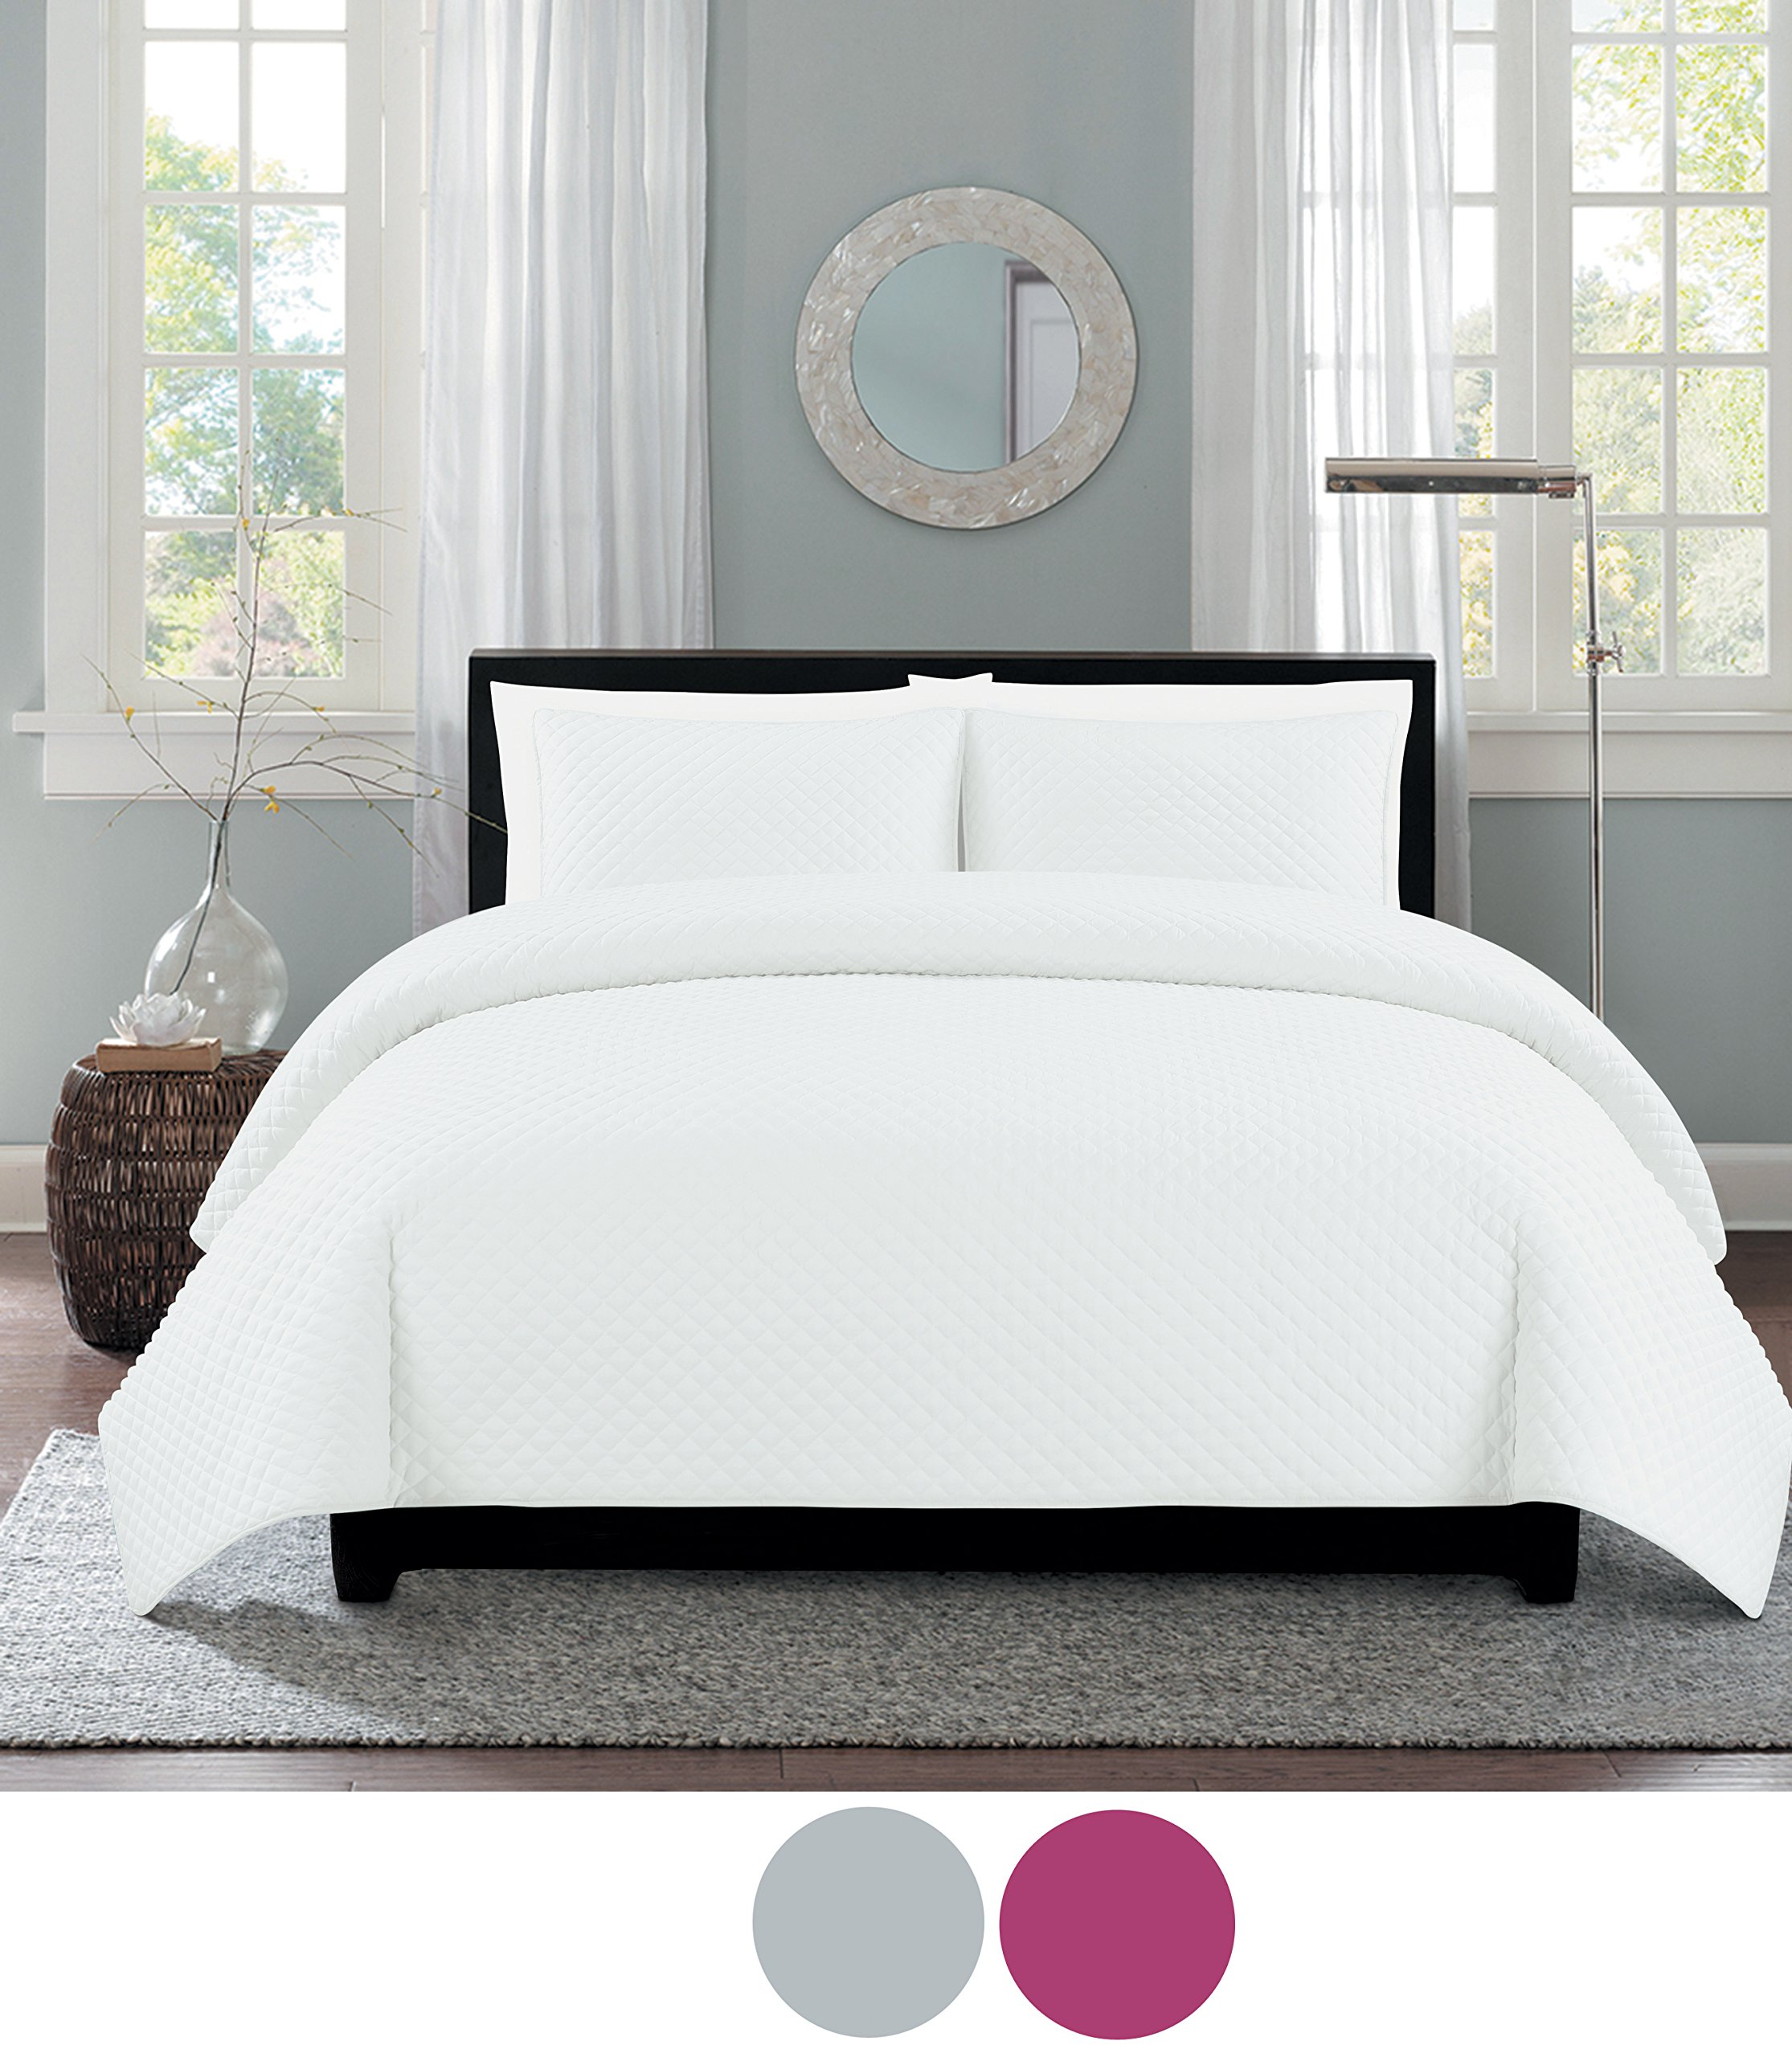 Eastend Home Fashions One Inch Diamond quilt set, Full/Queen, Bright White